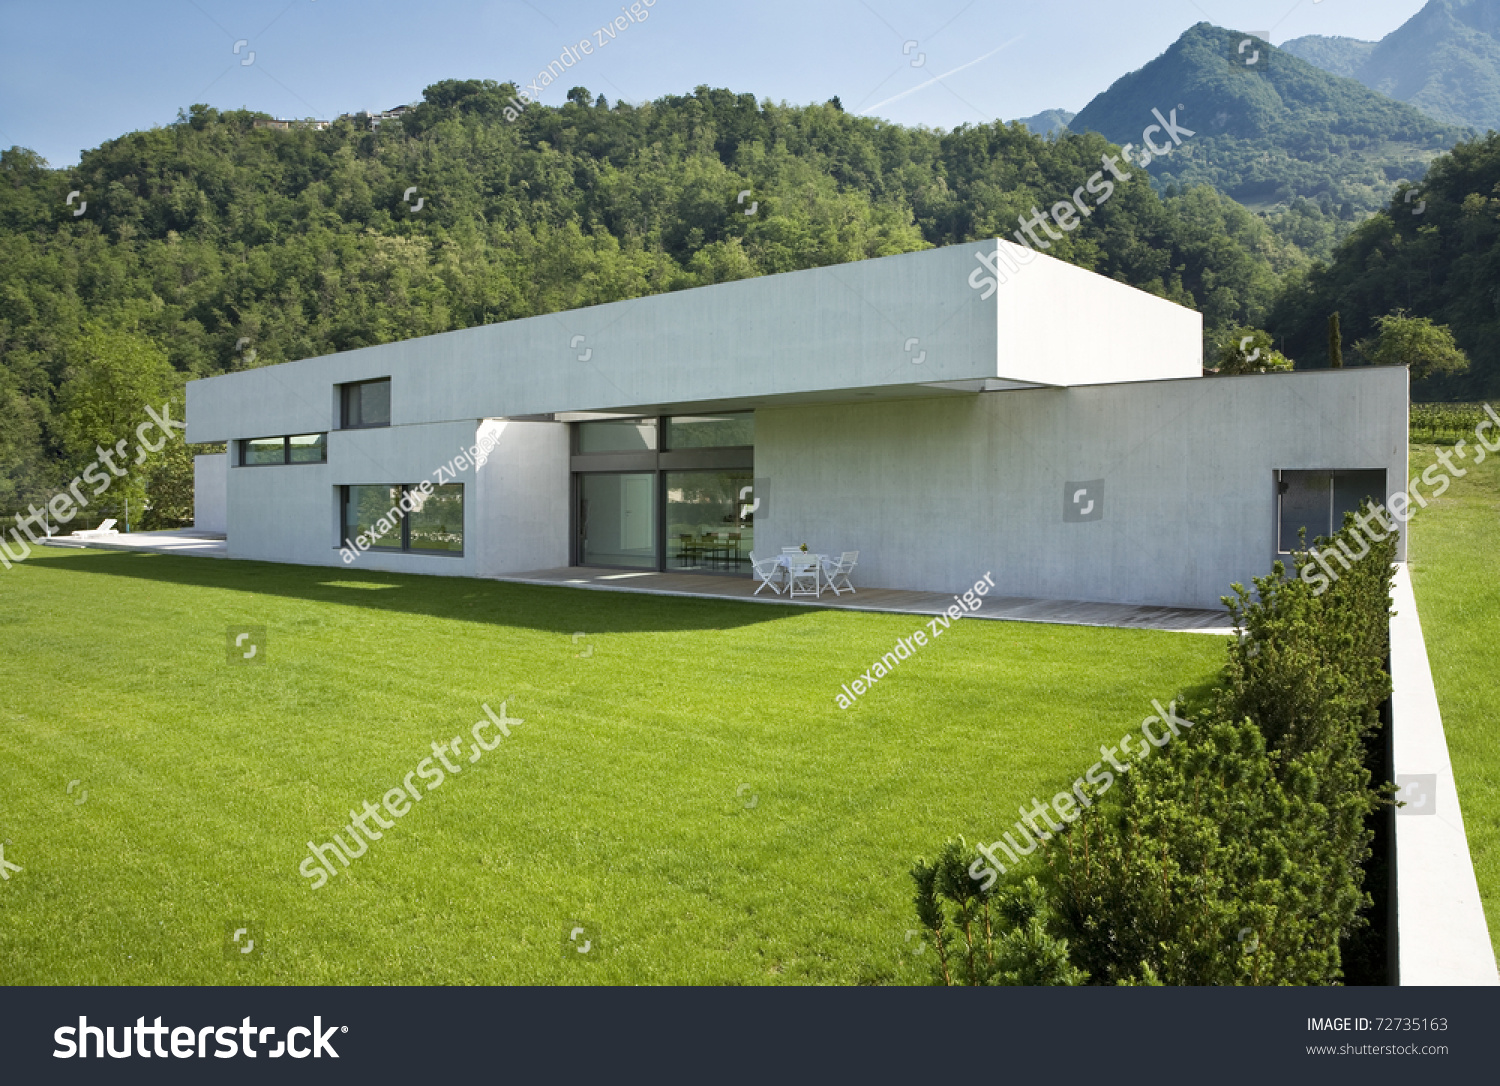 Outdoors Modern House With Green Garden Stock Photo 72735163 ... - ^